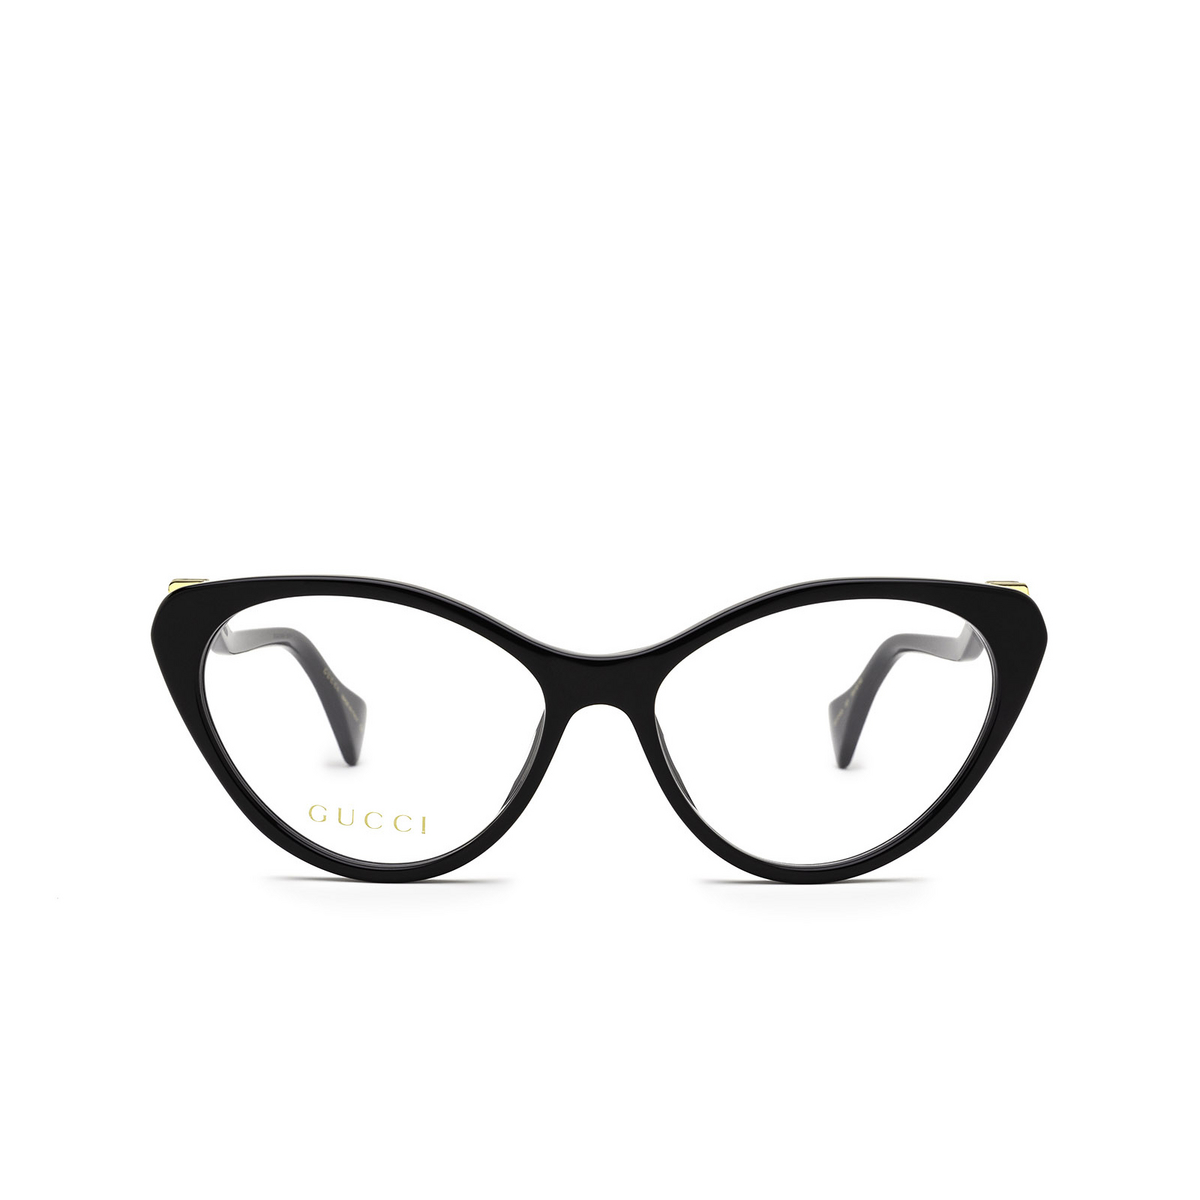 Gucci® Cat-eye Eyeglasses: GG1013O color Black 001 - front view.